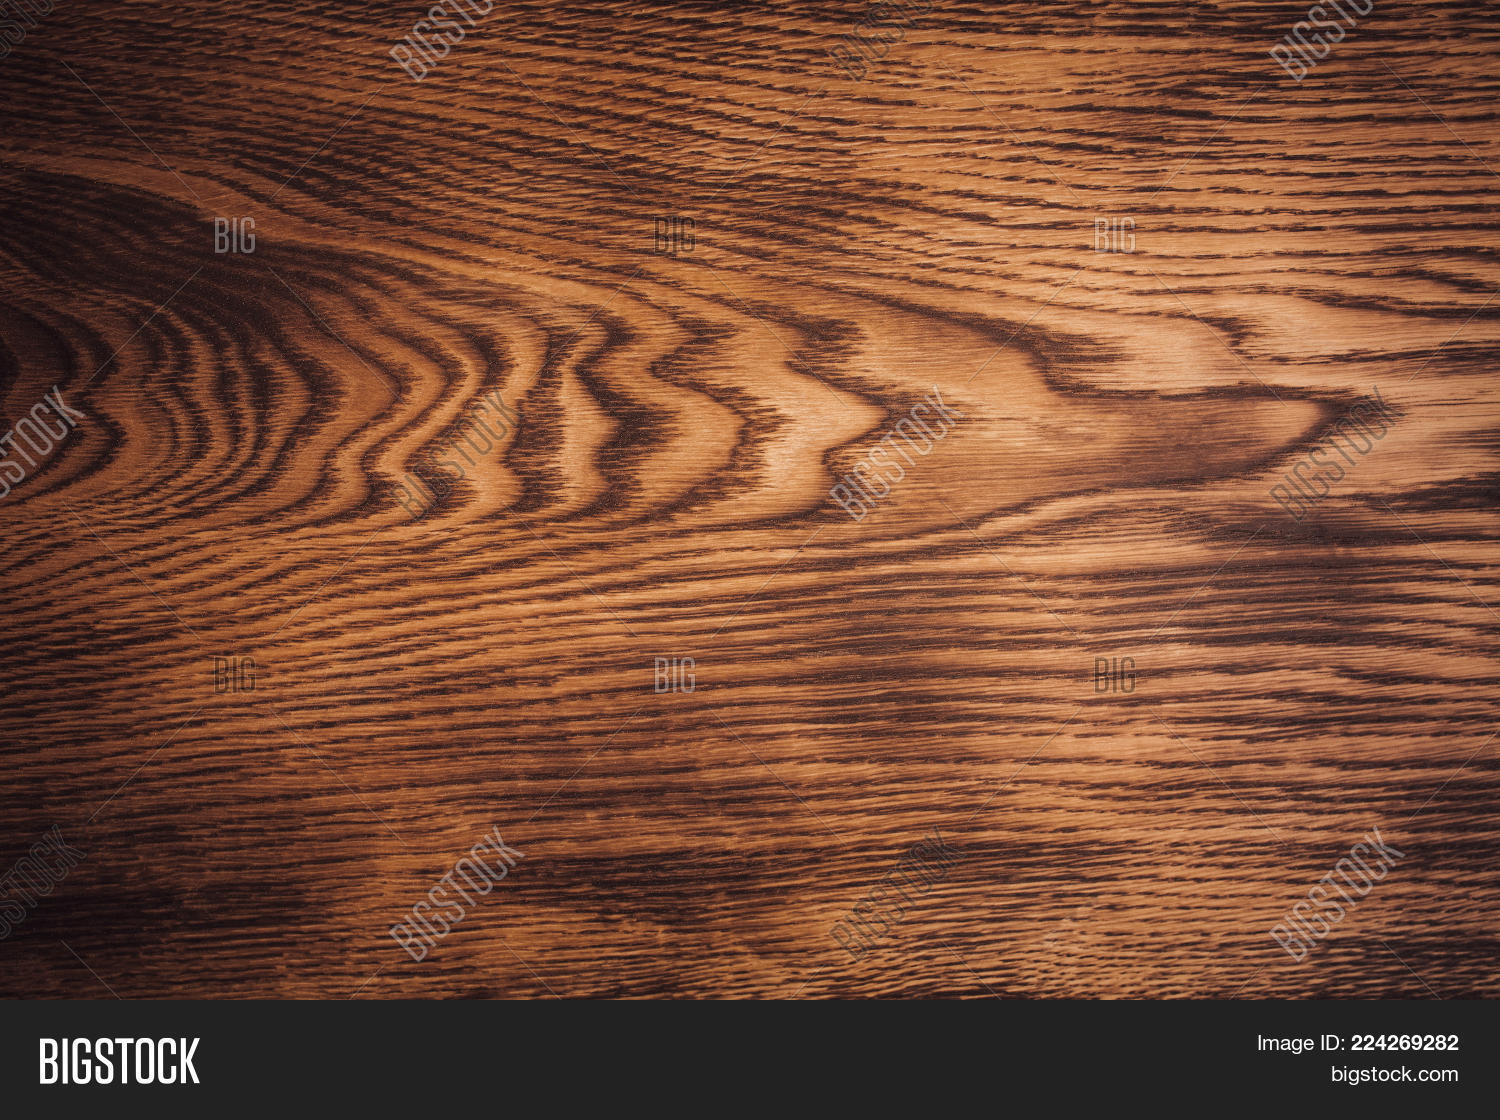 Wood Table Texture Background Rustic Made Of Old